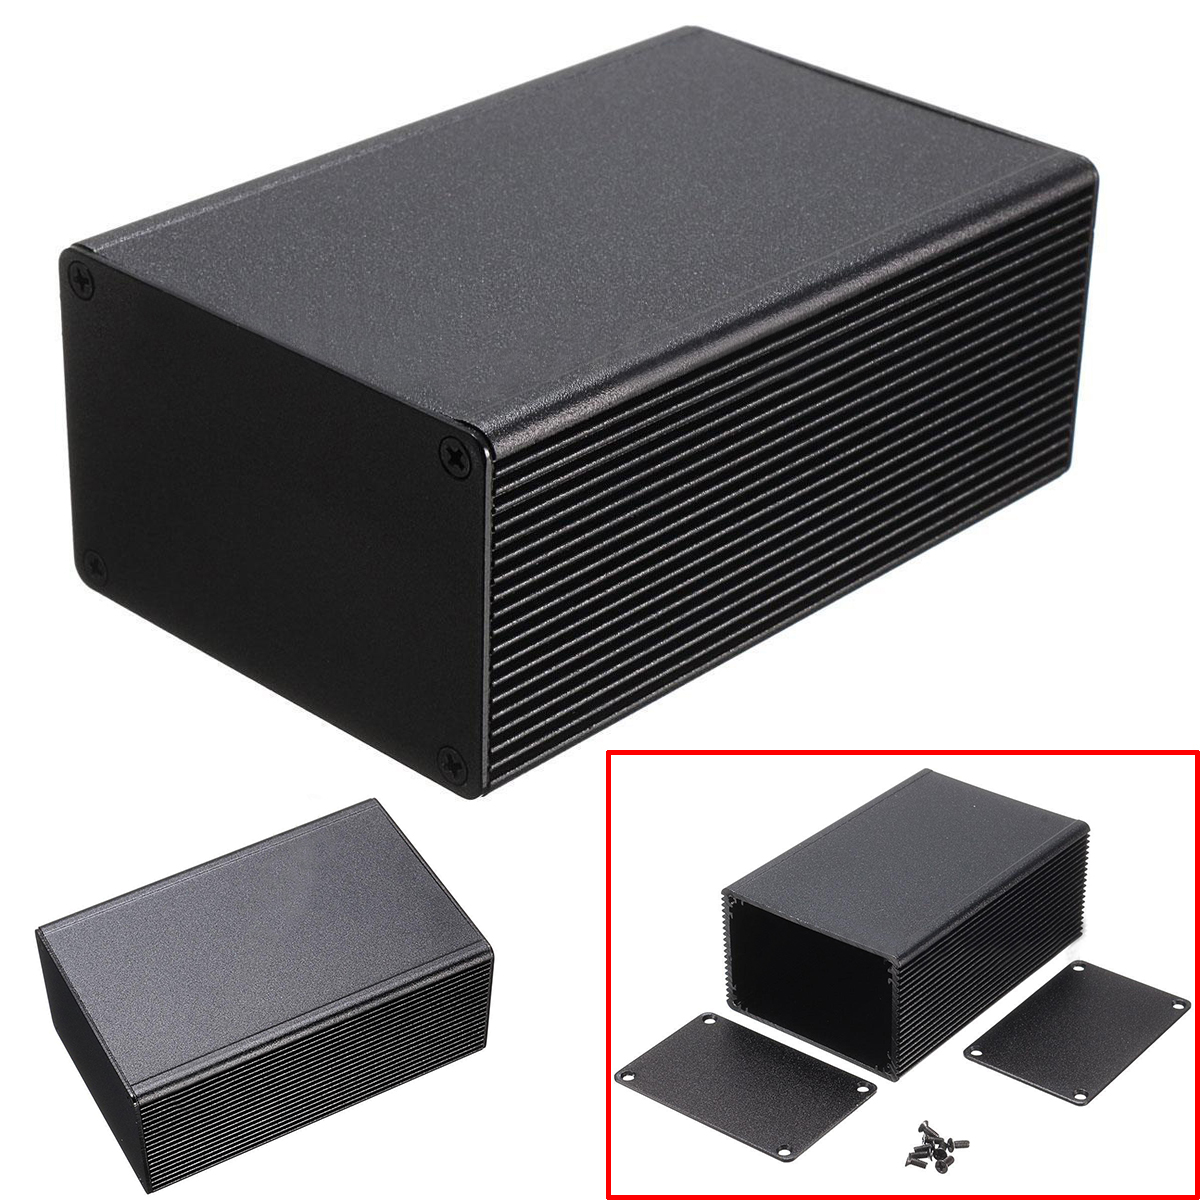 1pc Aluminum Electronic Box Black PCB Instrument Meter Enclosure Case 100x66x43mm casio gpw 1000t 1a